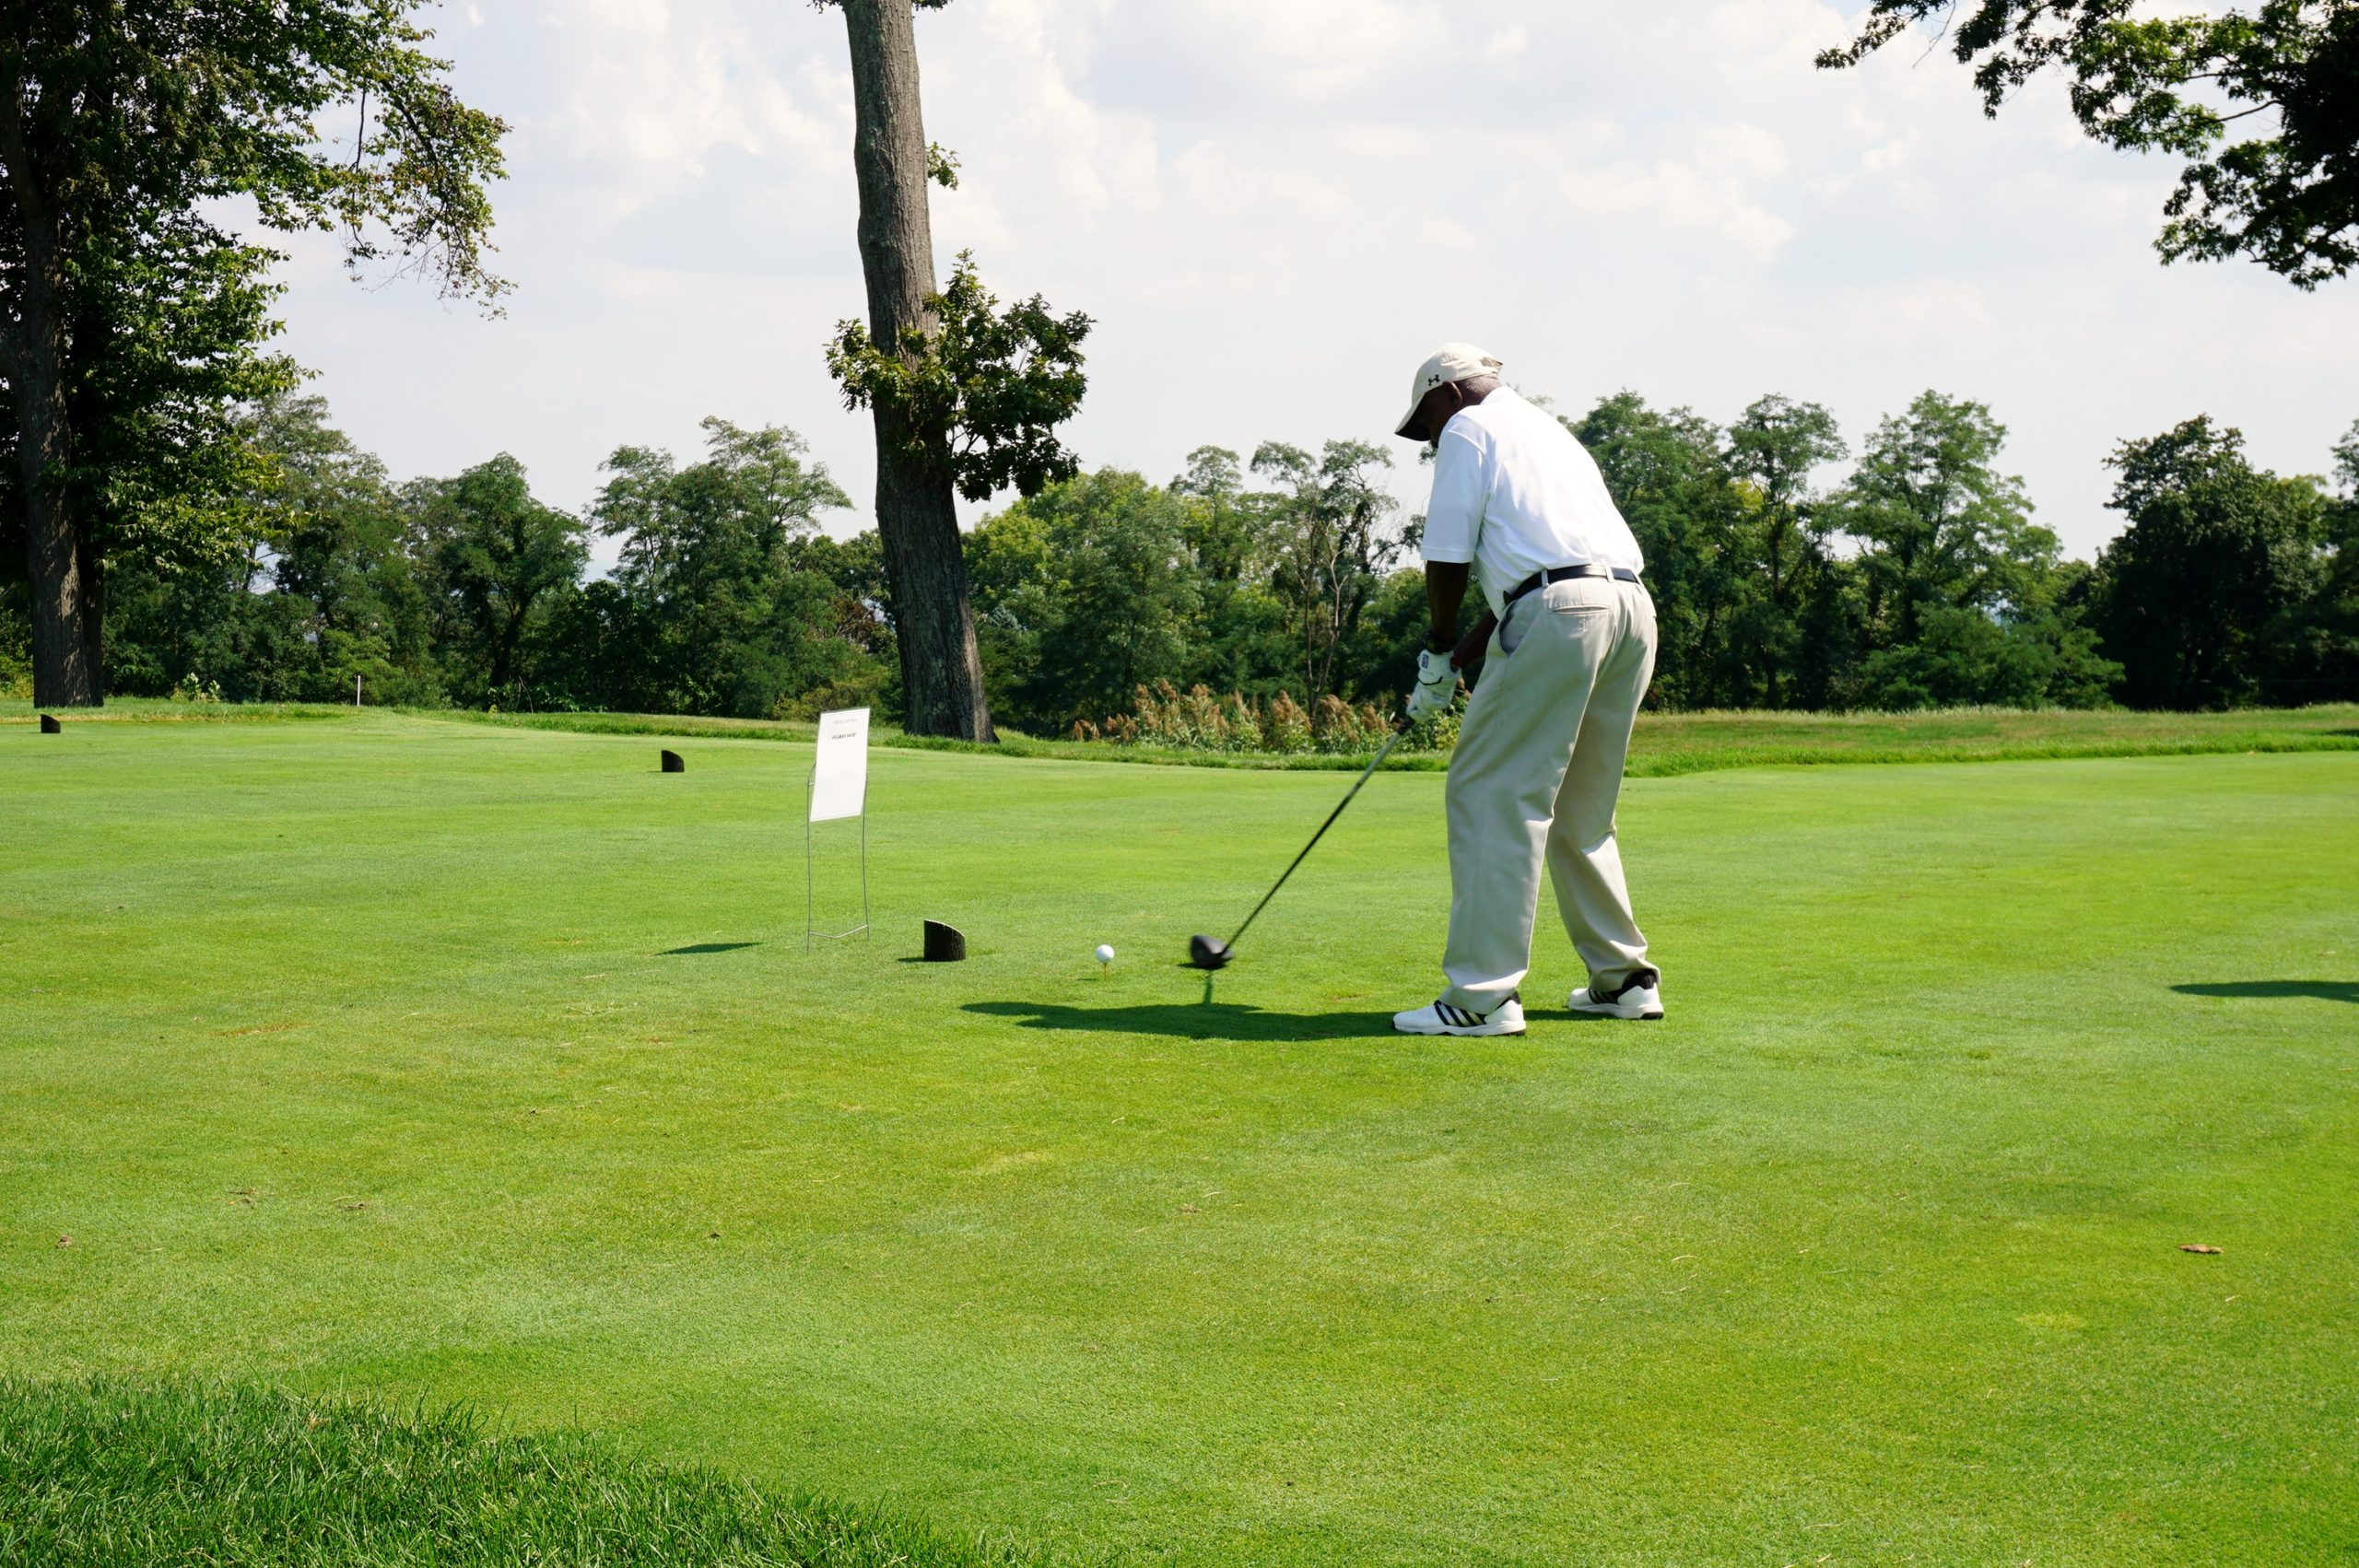 New Community To Host 25th Annual Golf Classic July 1